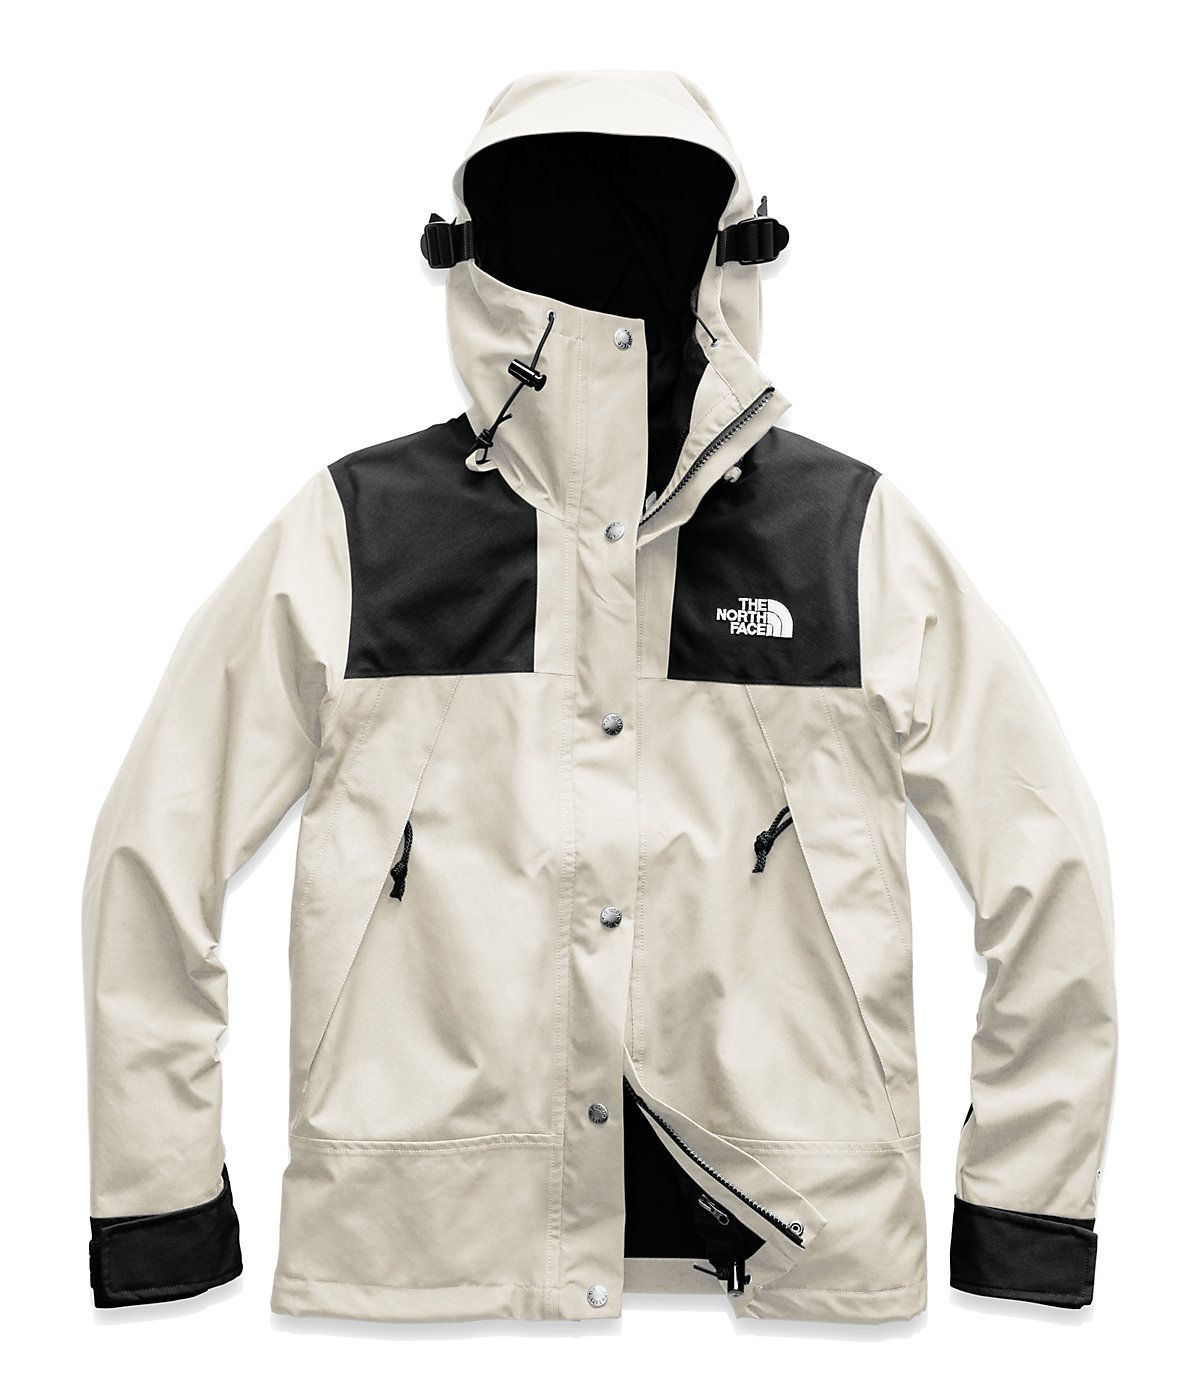 North Face Mountain Parka In Women's Coats & Jackets for